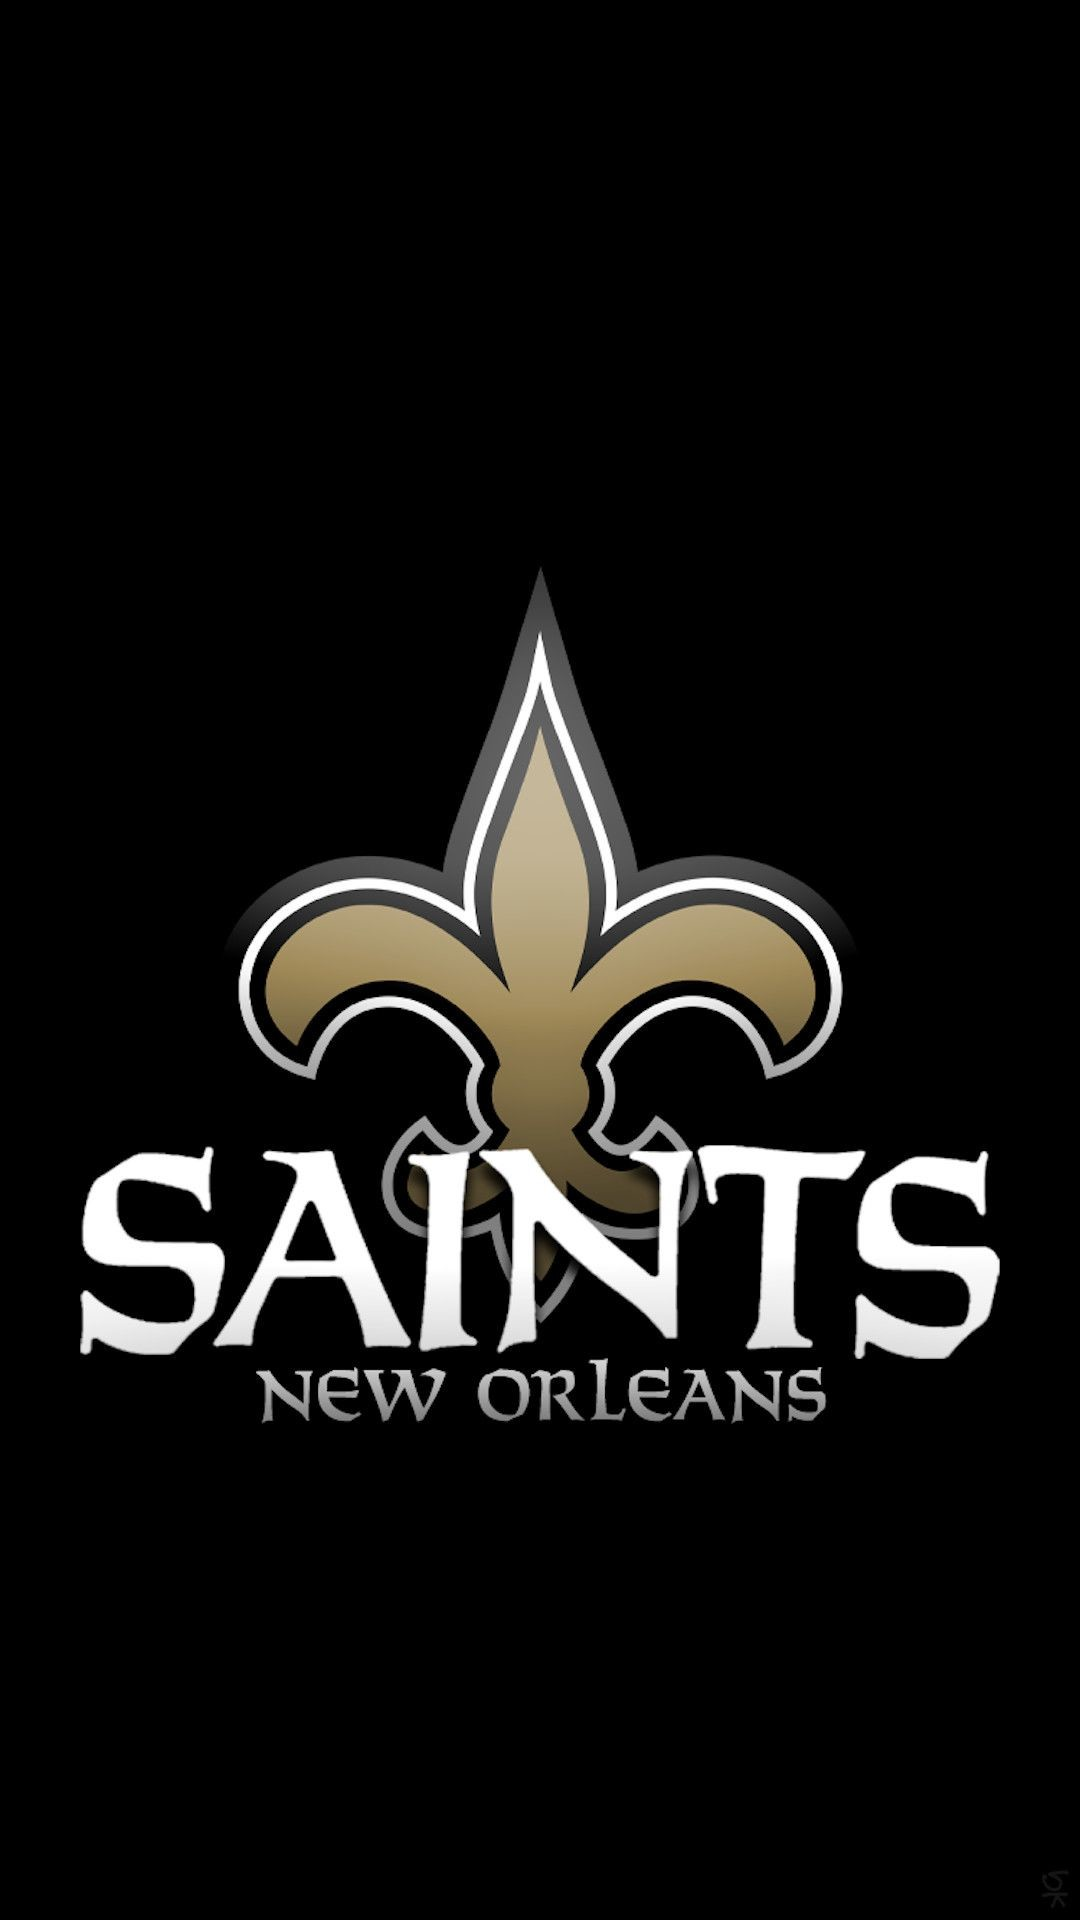 New Orleans Saints Wallpaper 76 Images